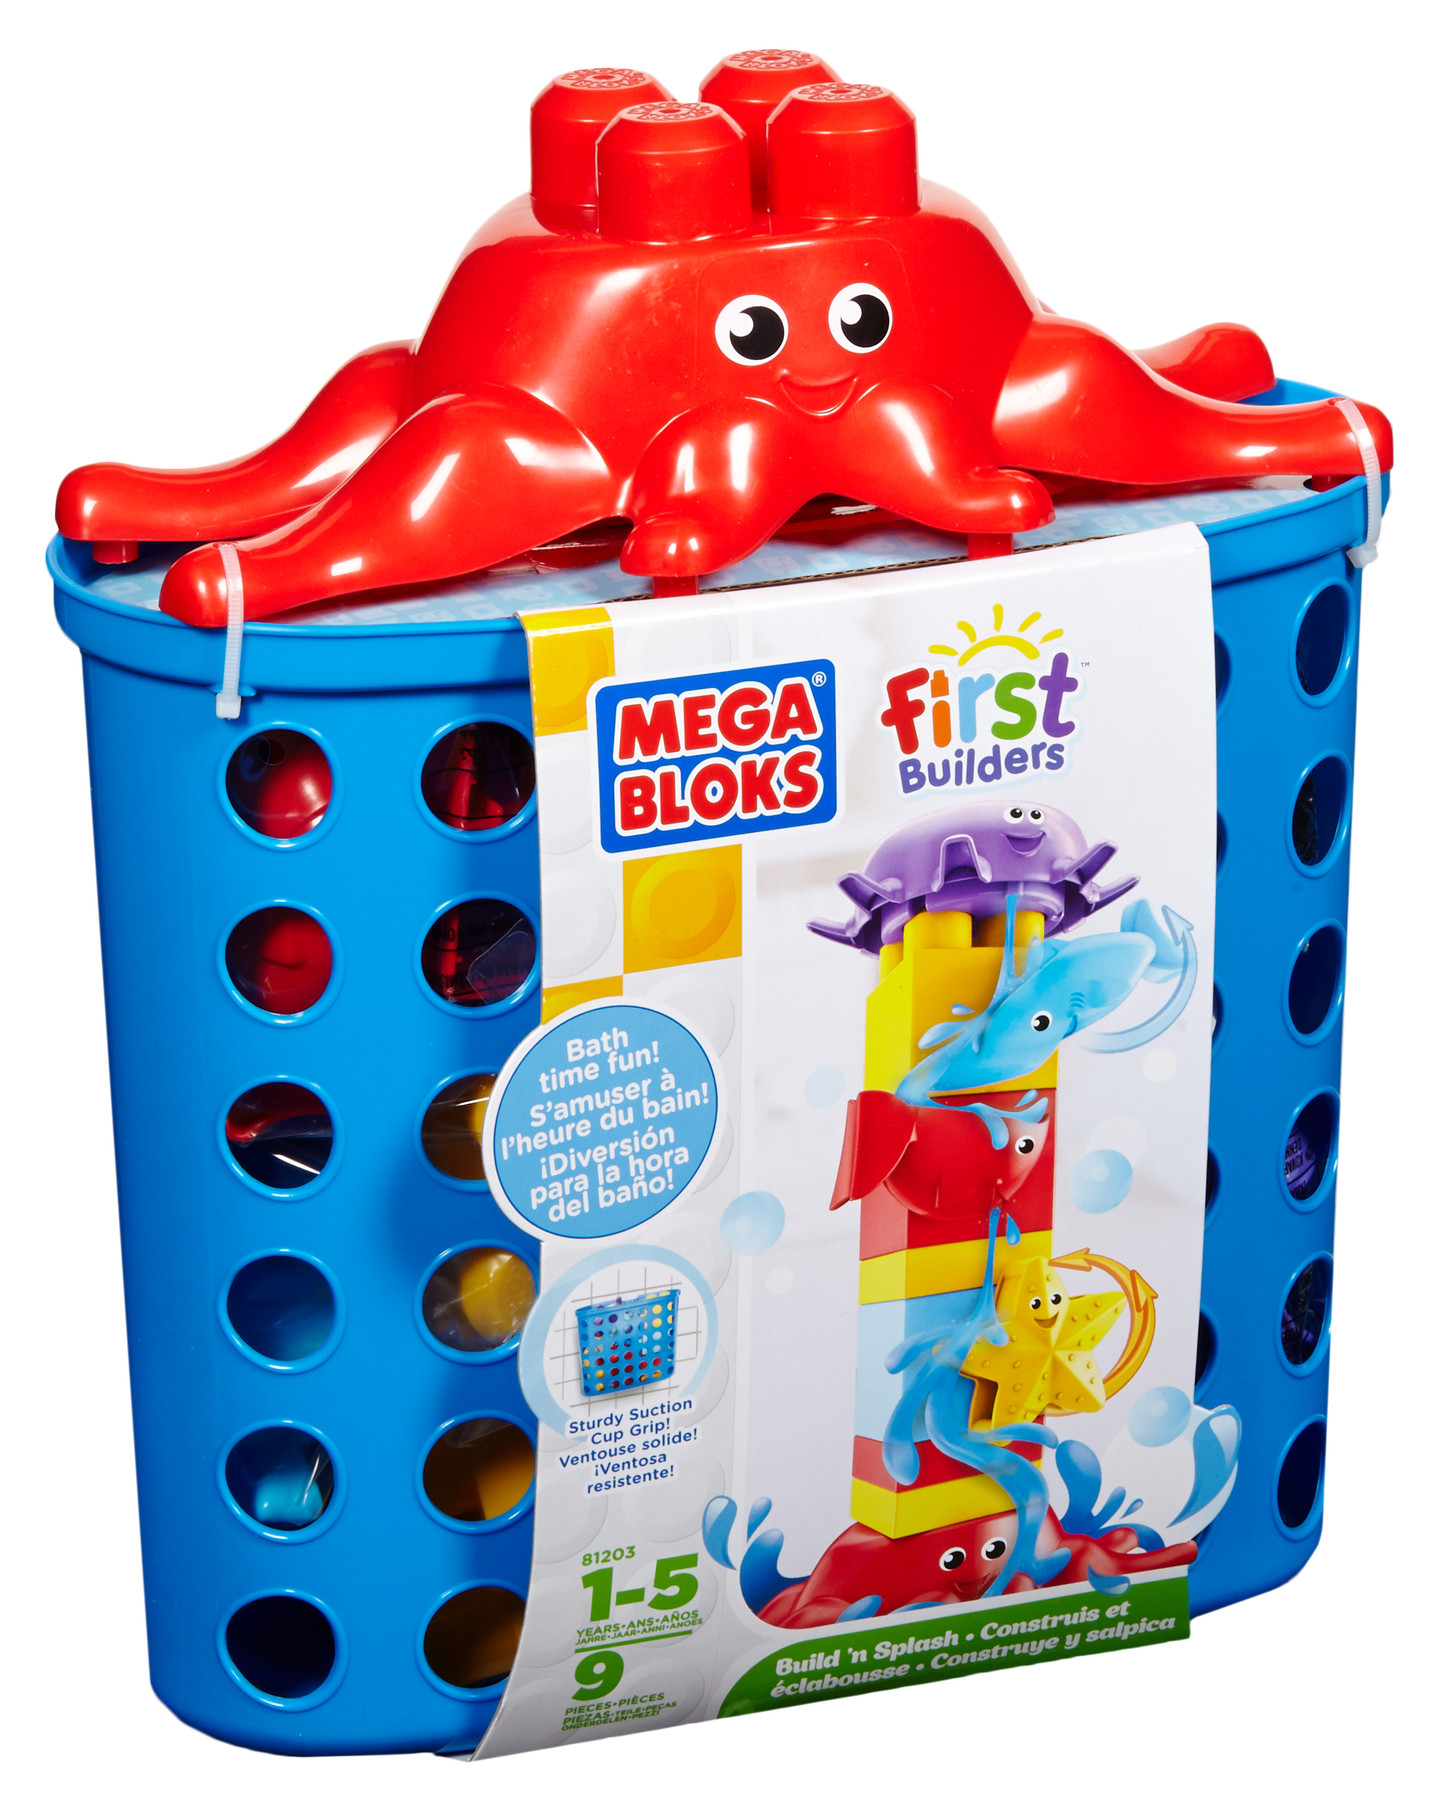 Mega Bloks® First Builders™ Build 'n Splash Giveaway